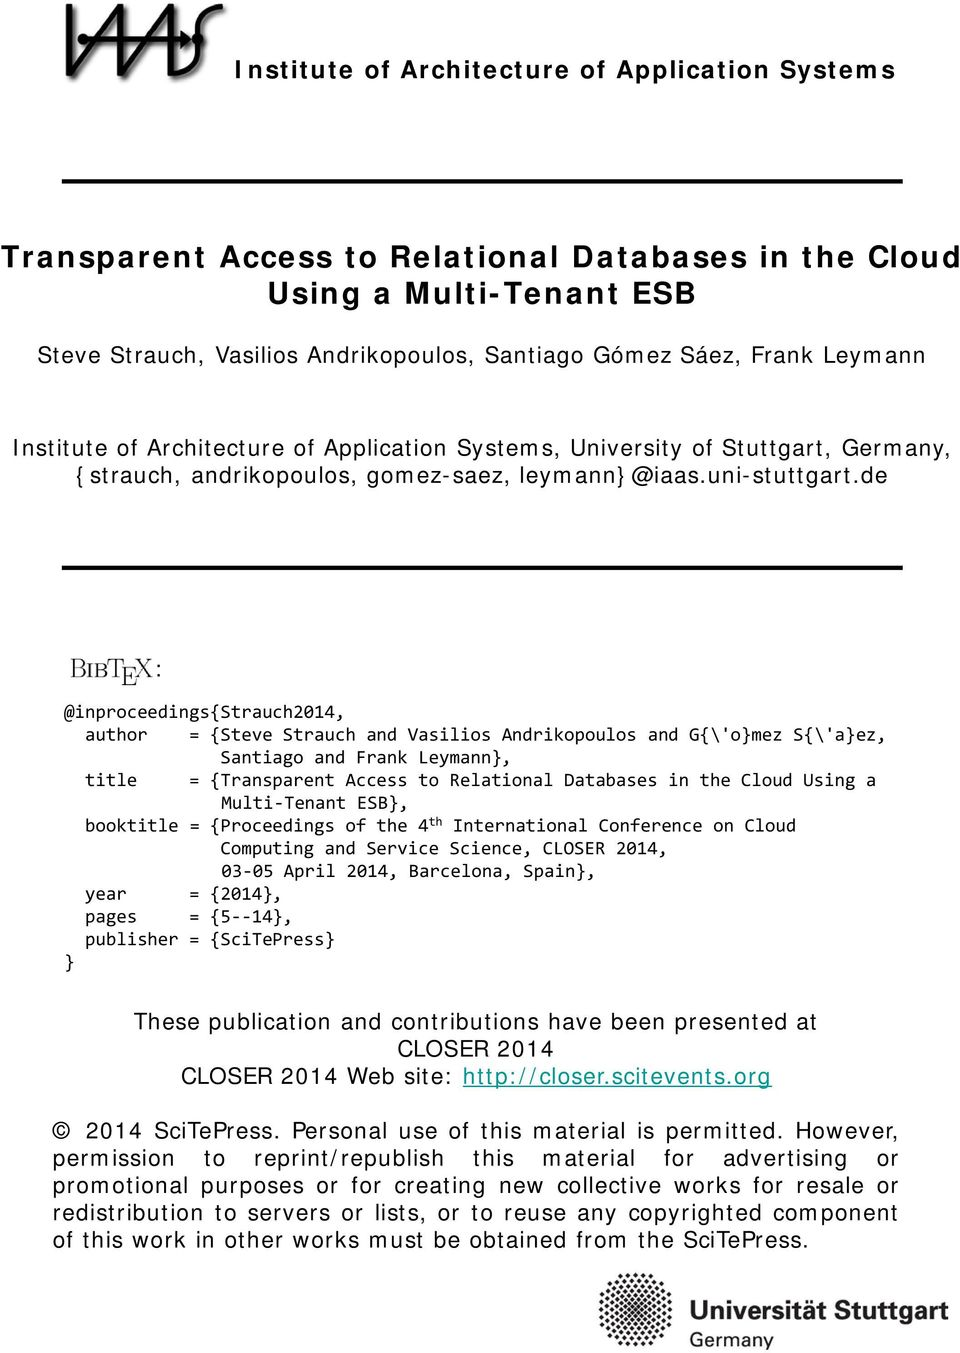 de : @inproceedings{strauch2014, author = {Steve Strauch and Vasilios Andrikopoulos and G{\'o}mez S{\'a}ez, Santiago and Frank Leymann}, title = {Transparent Access to Relational Databases in the